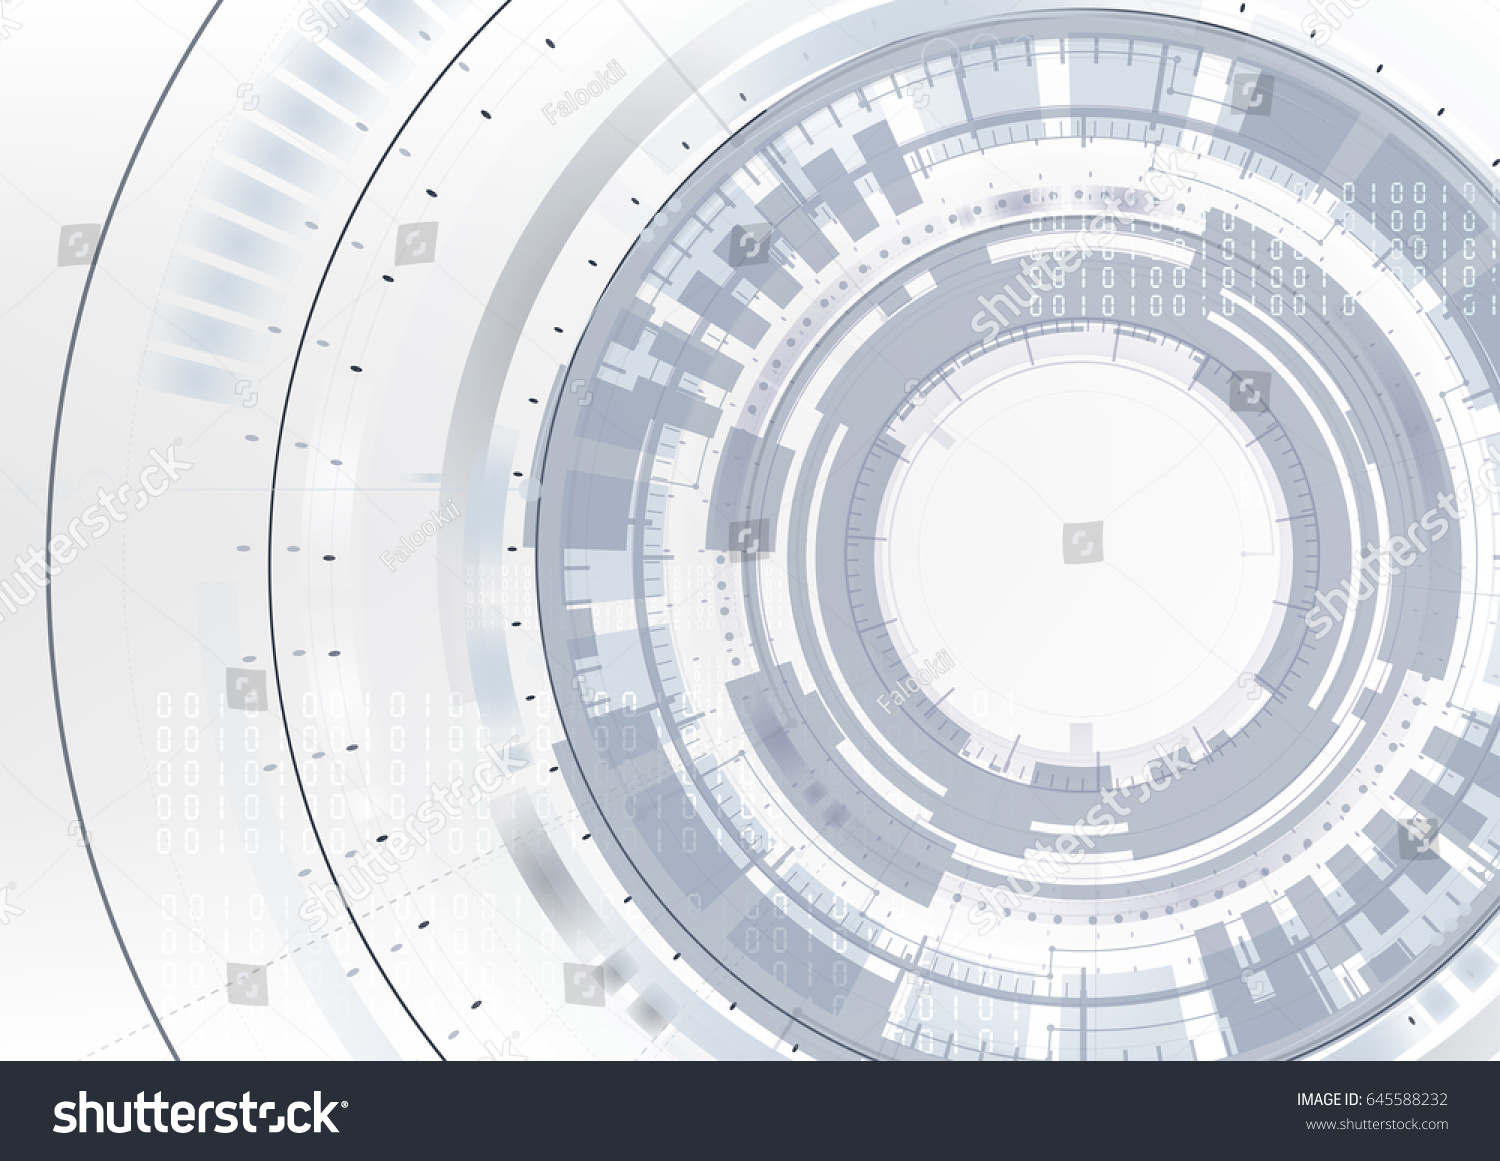 Technological abstract digital circuit network blueprint stock technological abstract digital circuit network blueprint interface background vector design malvernweather Gallery